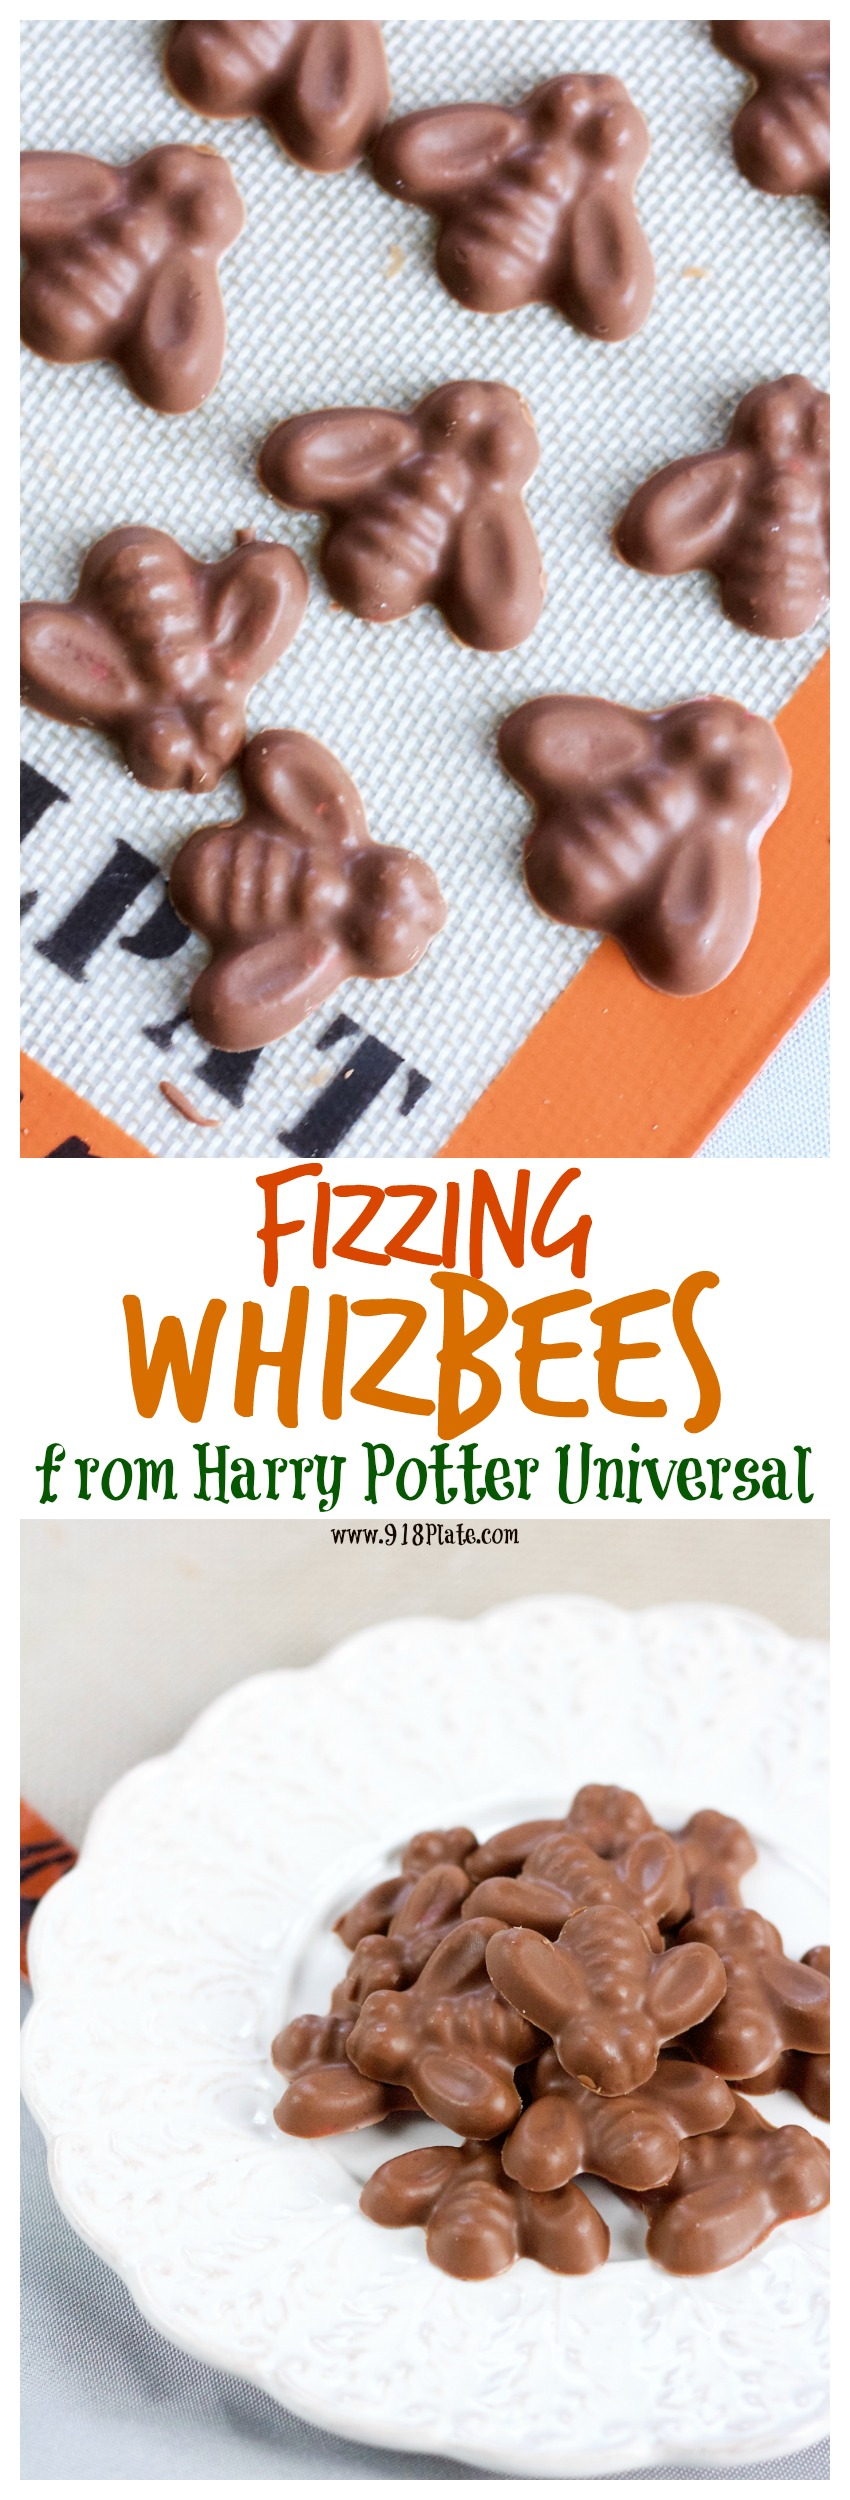 Fizzing Whizbees are a Harry Potter treat that you can make on your own and taste just like the real thing! | Fizzing Whizbees | 918 Plate